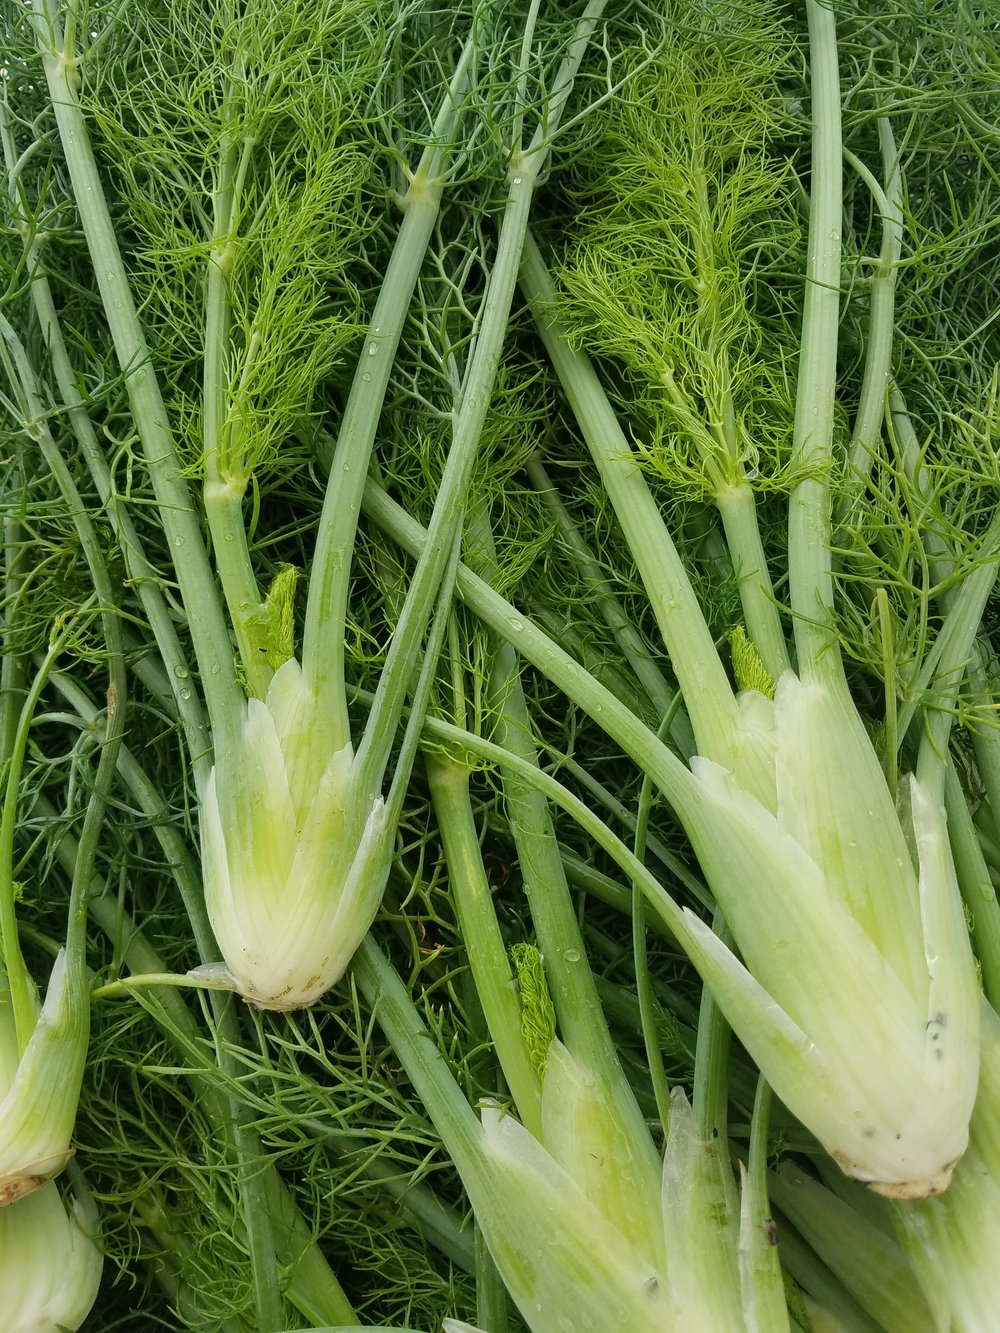 Fennel - A versatile herb that is delicious raw in salads, or roasted, sauteed, or stewed. The green fronds make a great pesto. Lends a fresh anise flavor to dishes